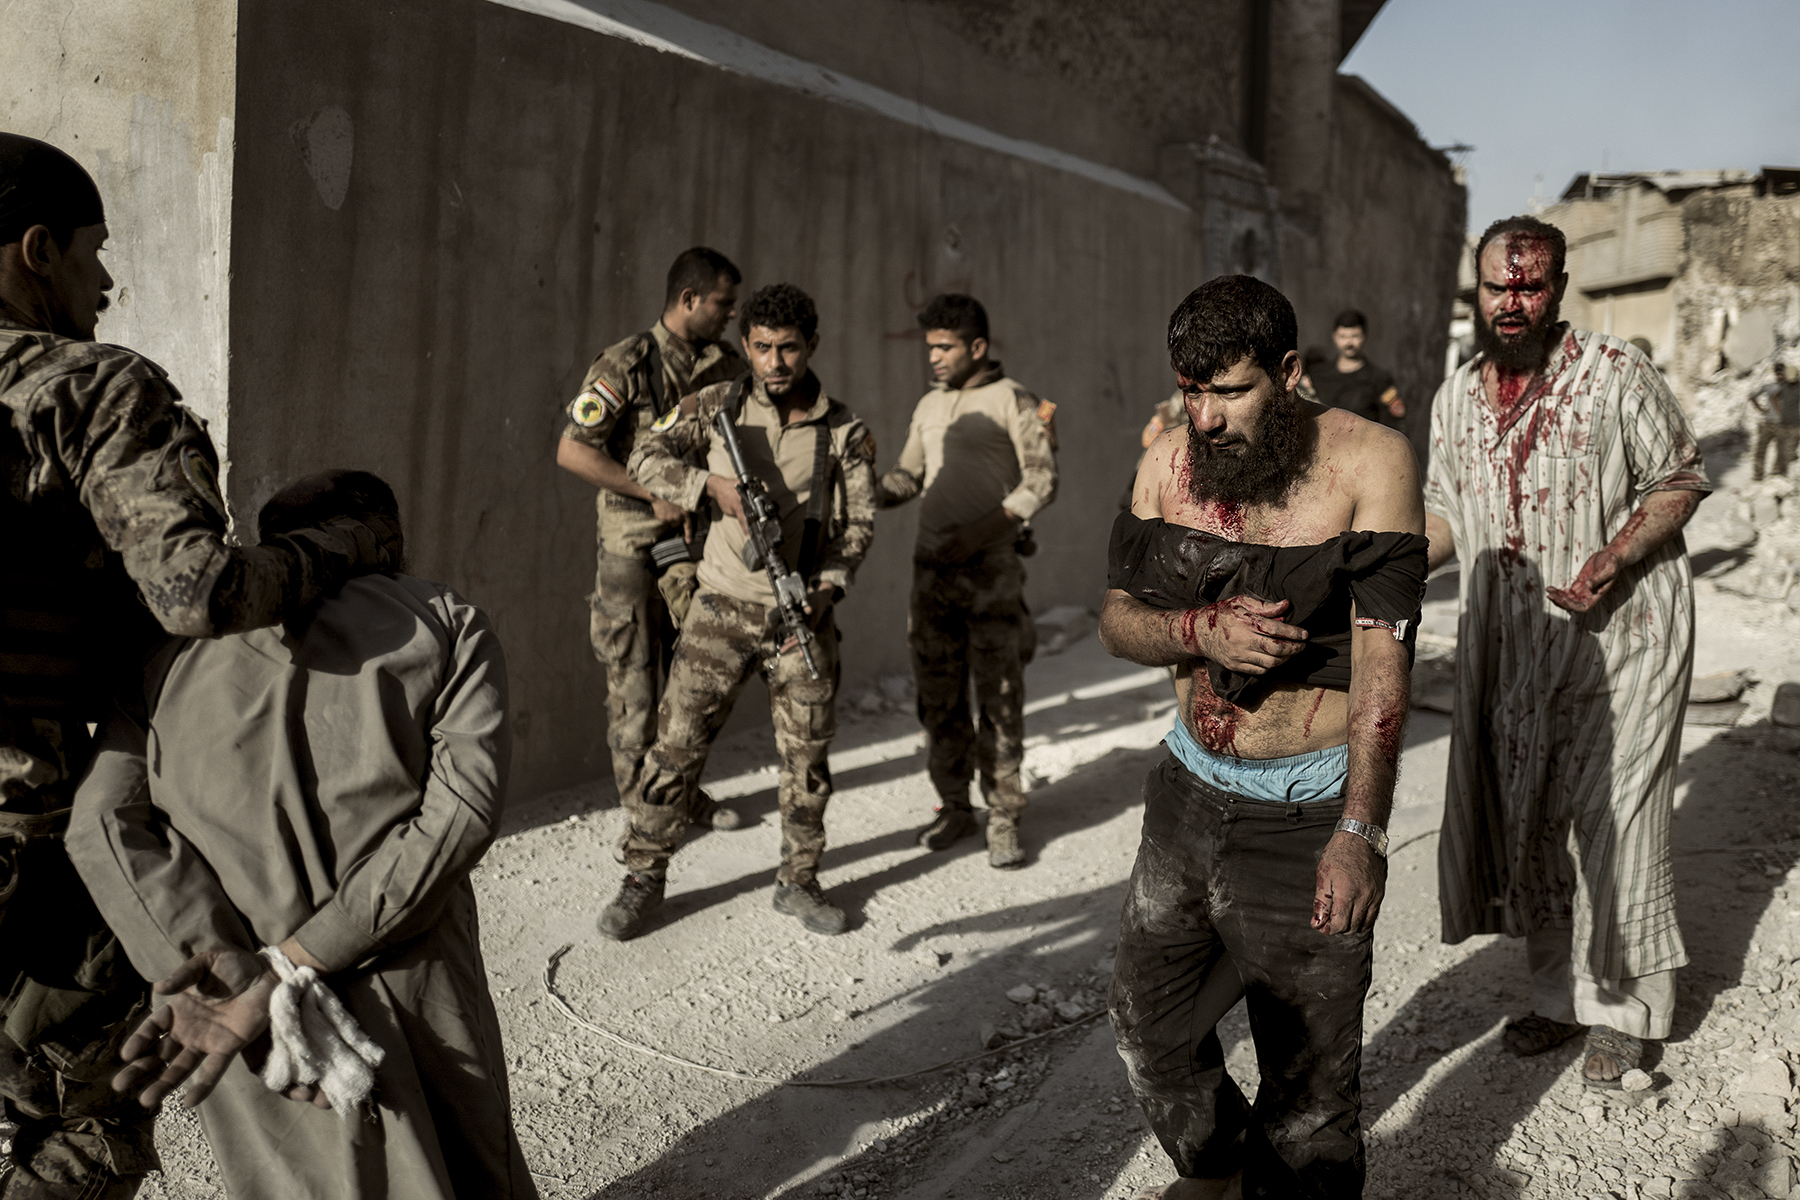 'It's ISIS', one of the soldiers yells, while they lead yet another group of wounded men covered in dust through the rubble of Mosul, away from the front lines.